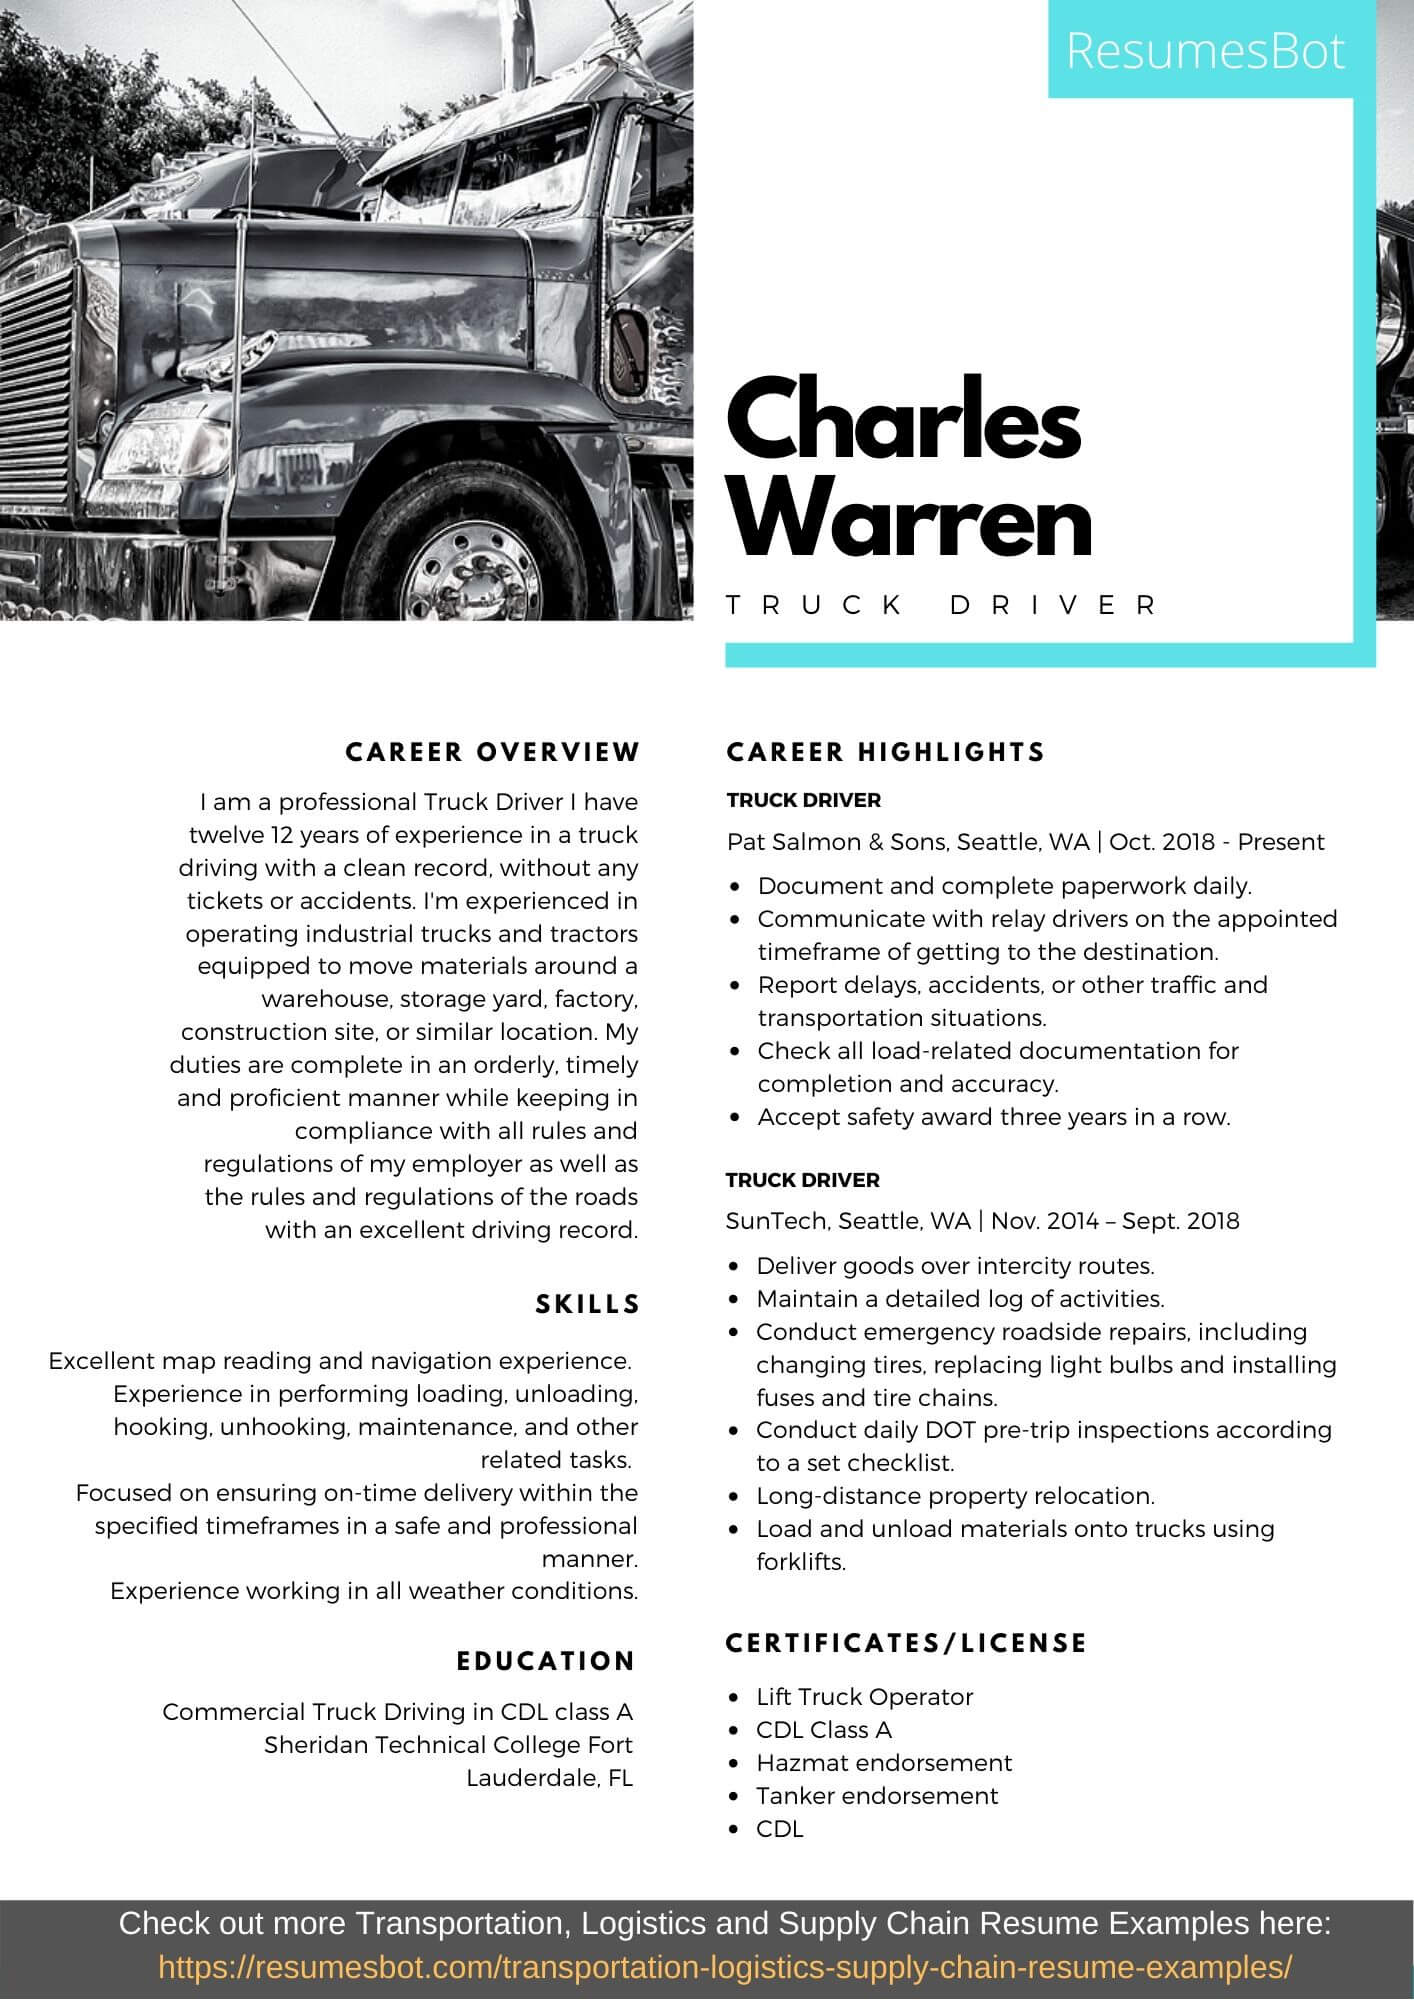 truck driver resume samples and tips pdf resumes bot sample example great project manager Resume Truck Driver Resume Sample Doc